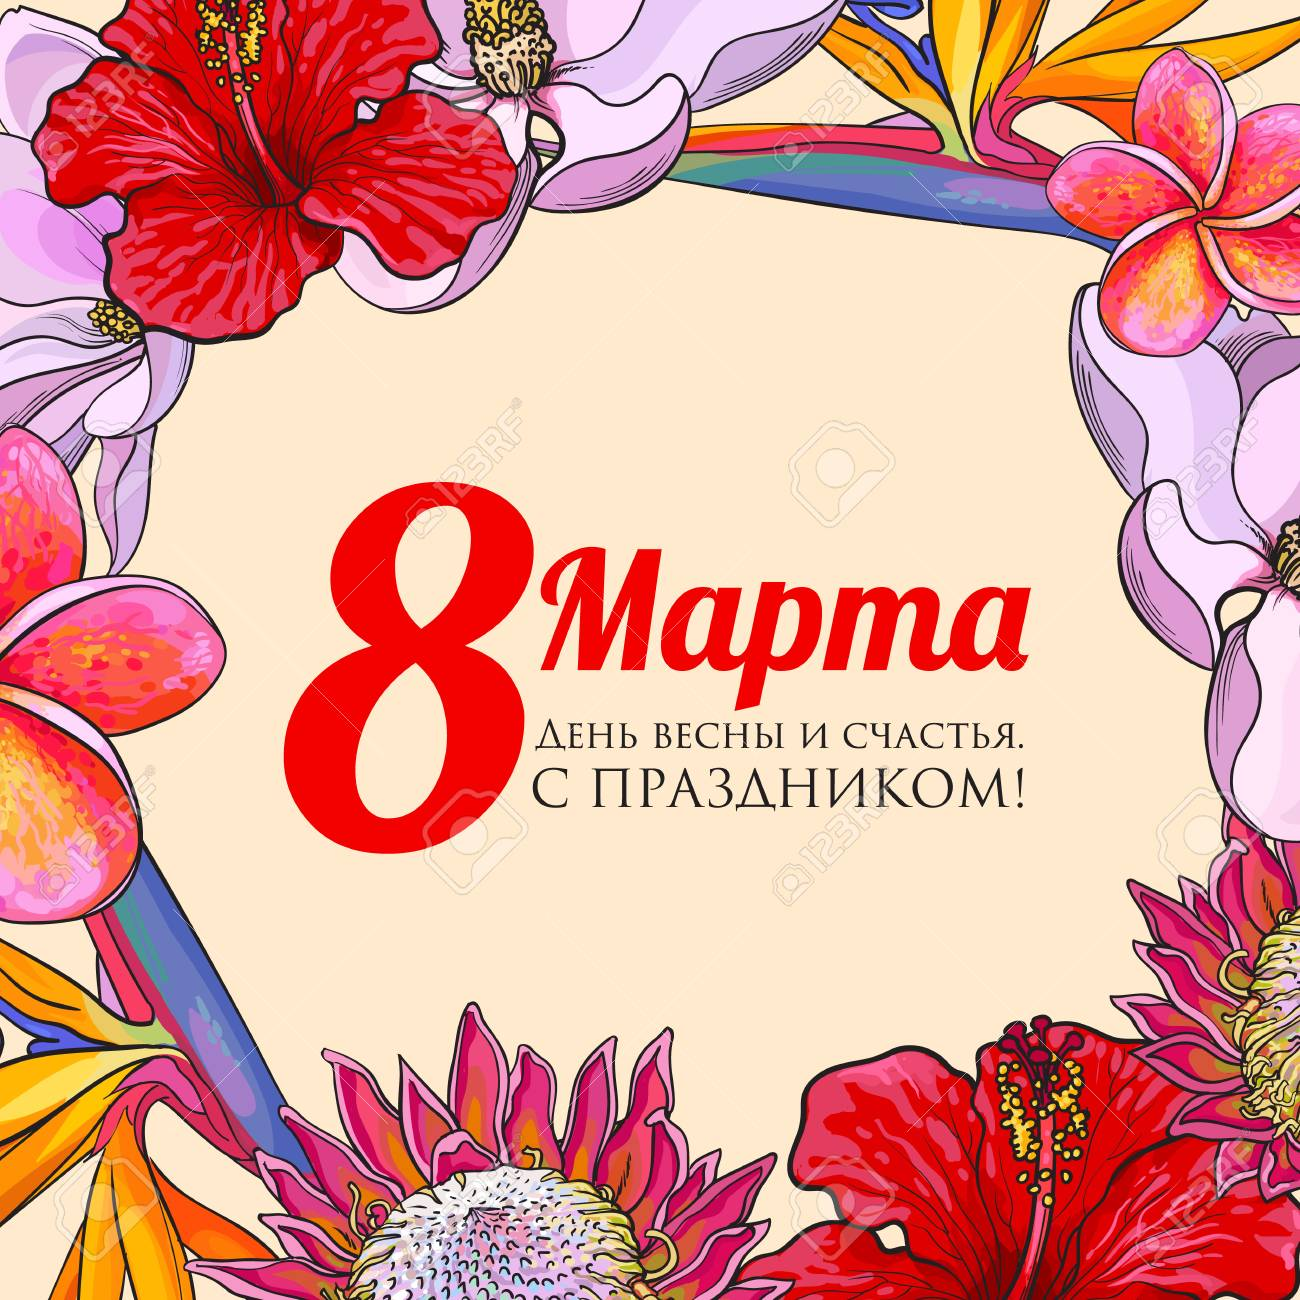 March 8 happy women day colorful greeting card in russian march 8 happy women day colorful greeting card in russian language with flowers in kristyandbryce Gallery